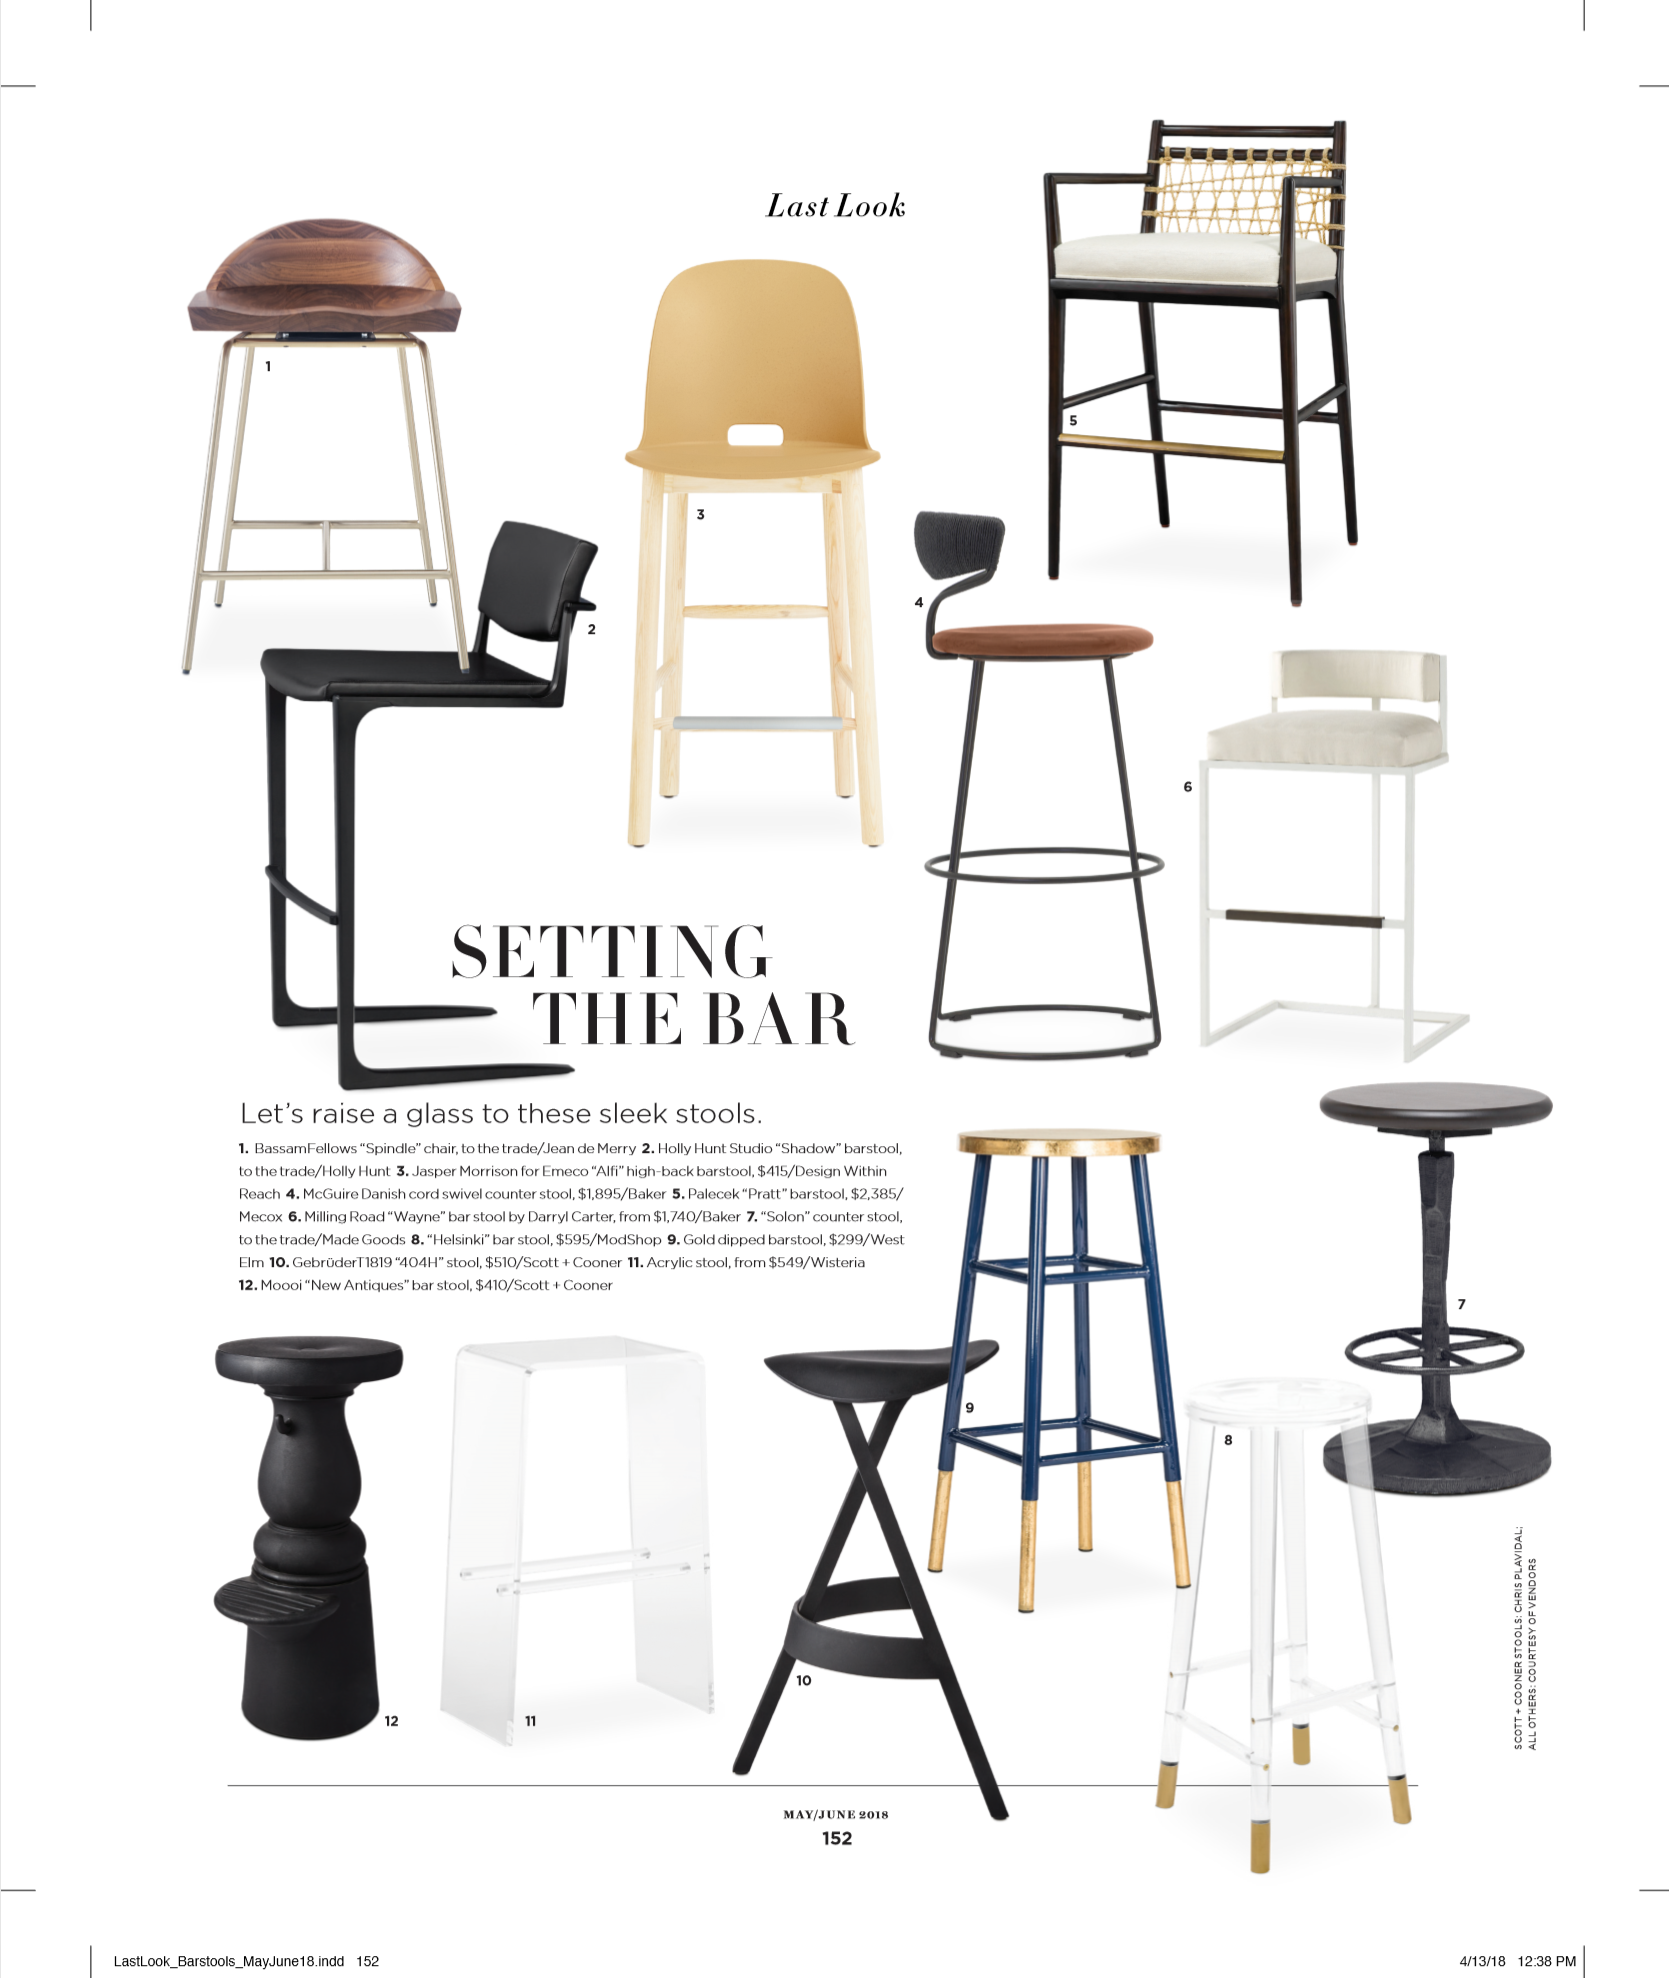 d home magazine may june 2018 article setting the bar featuring modshop's helsinki bar stool